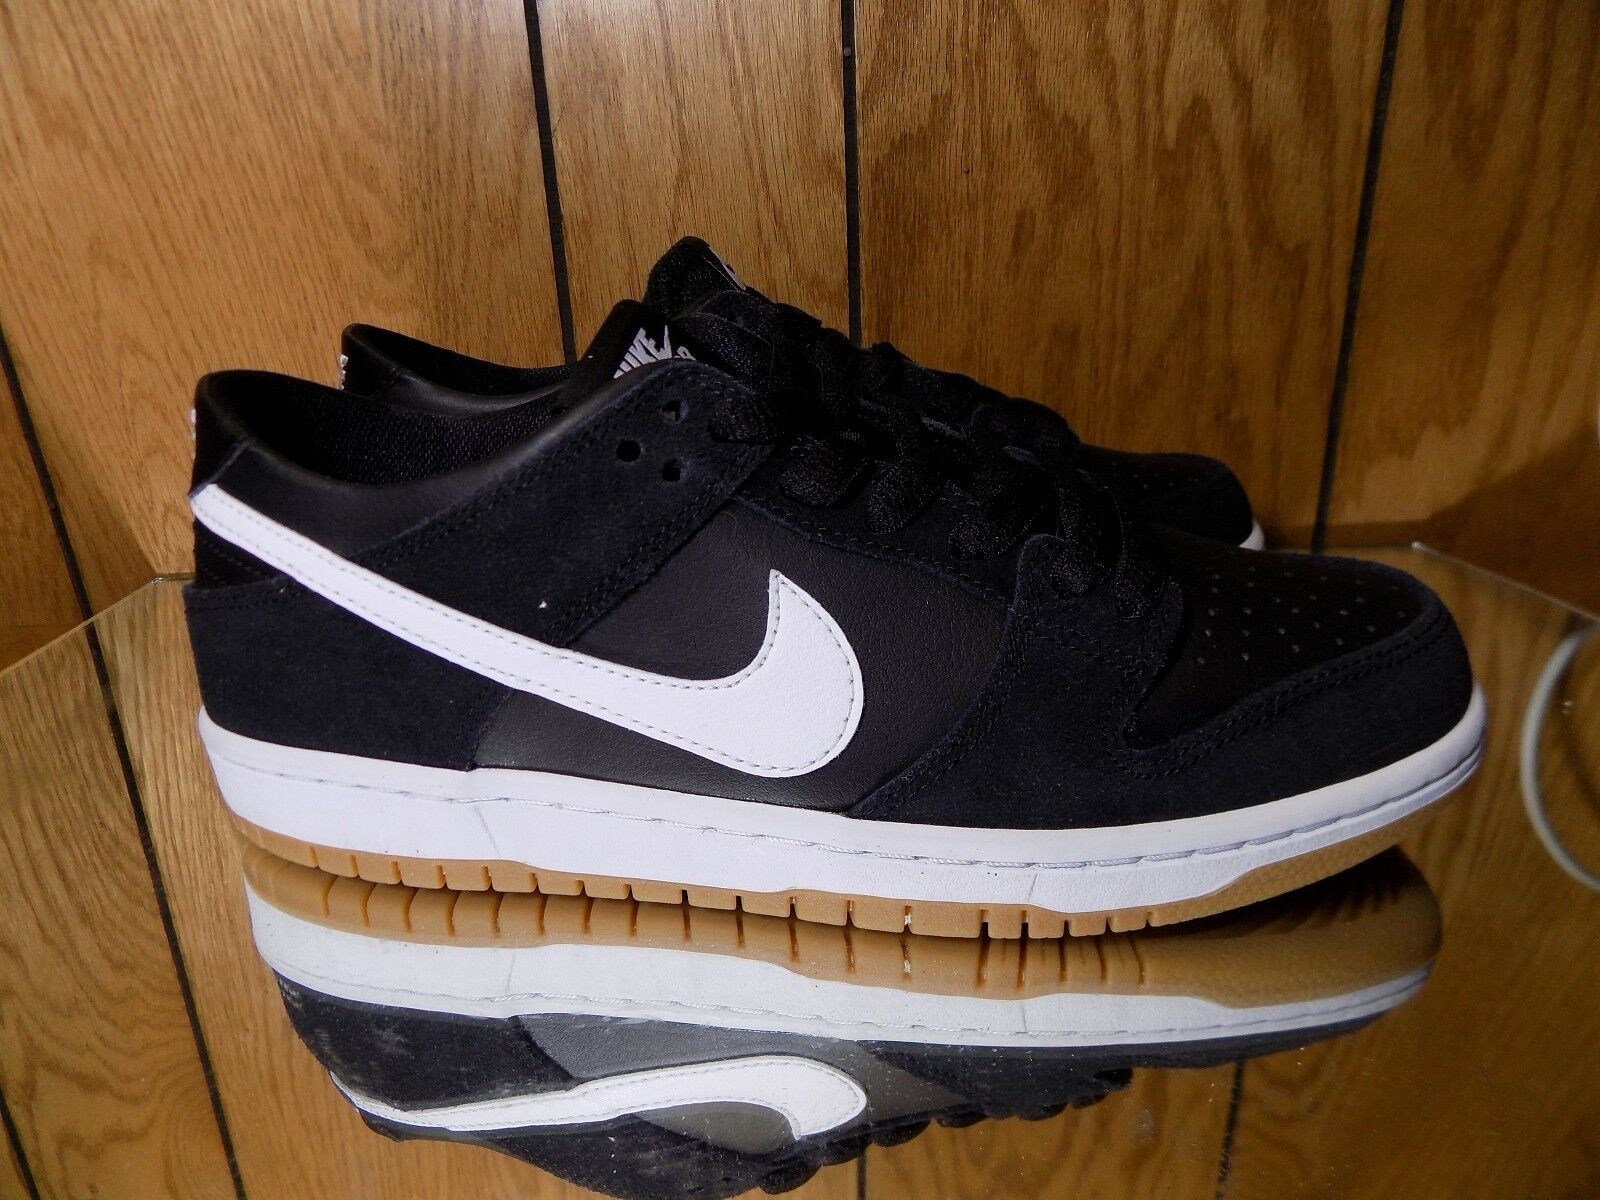 Nike SB Dunk Low Pro in Black/White/Gum Light Brown NWT 854866-019 s. 10.5 Wild casual shoes